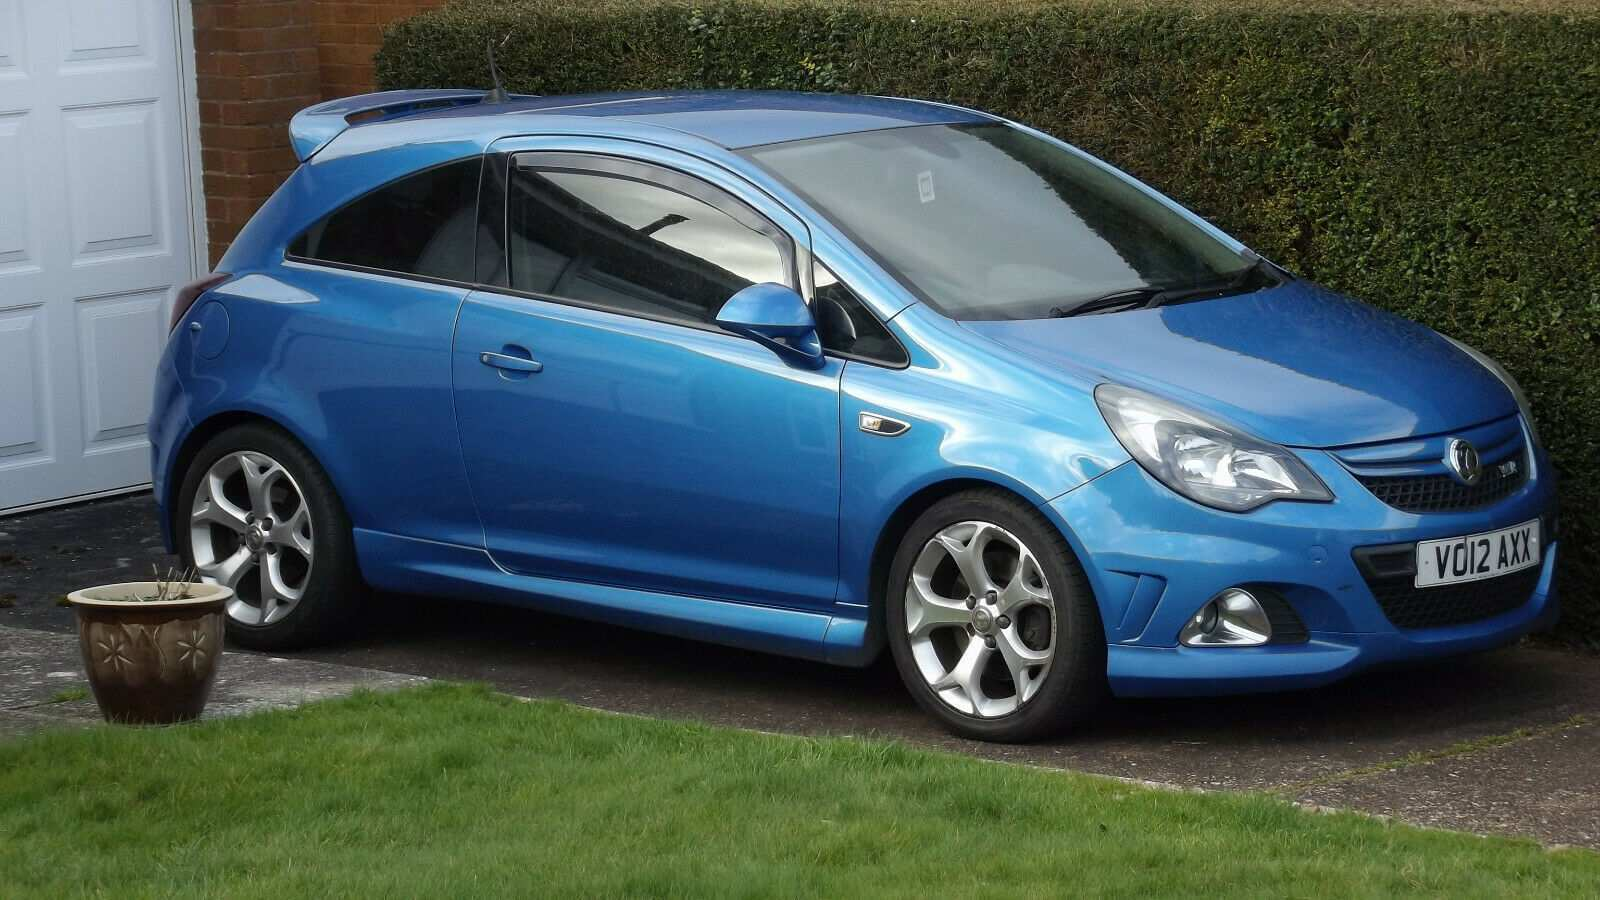 39 The 2020 Vauxhall Corsa VXR Performance And New Engine